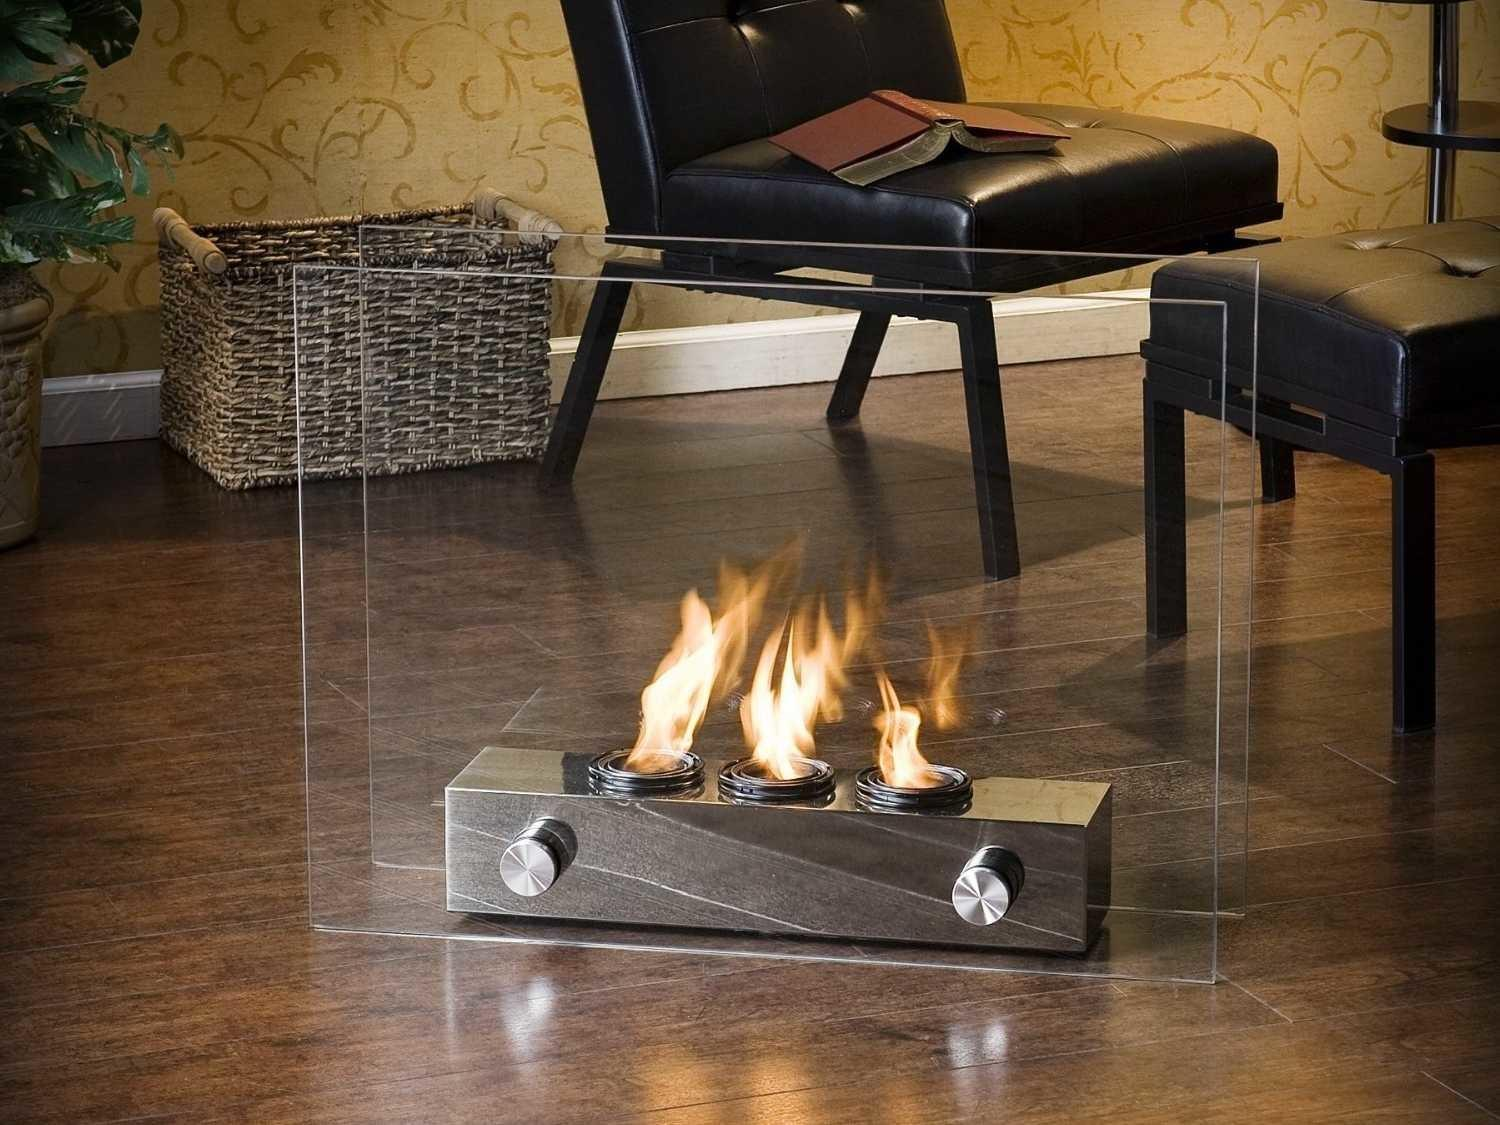 Portable Gel Fireplace Can Warm Any Room